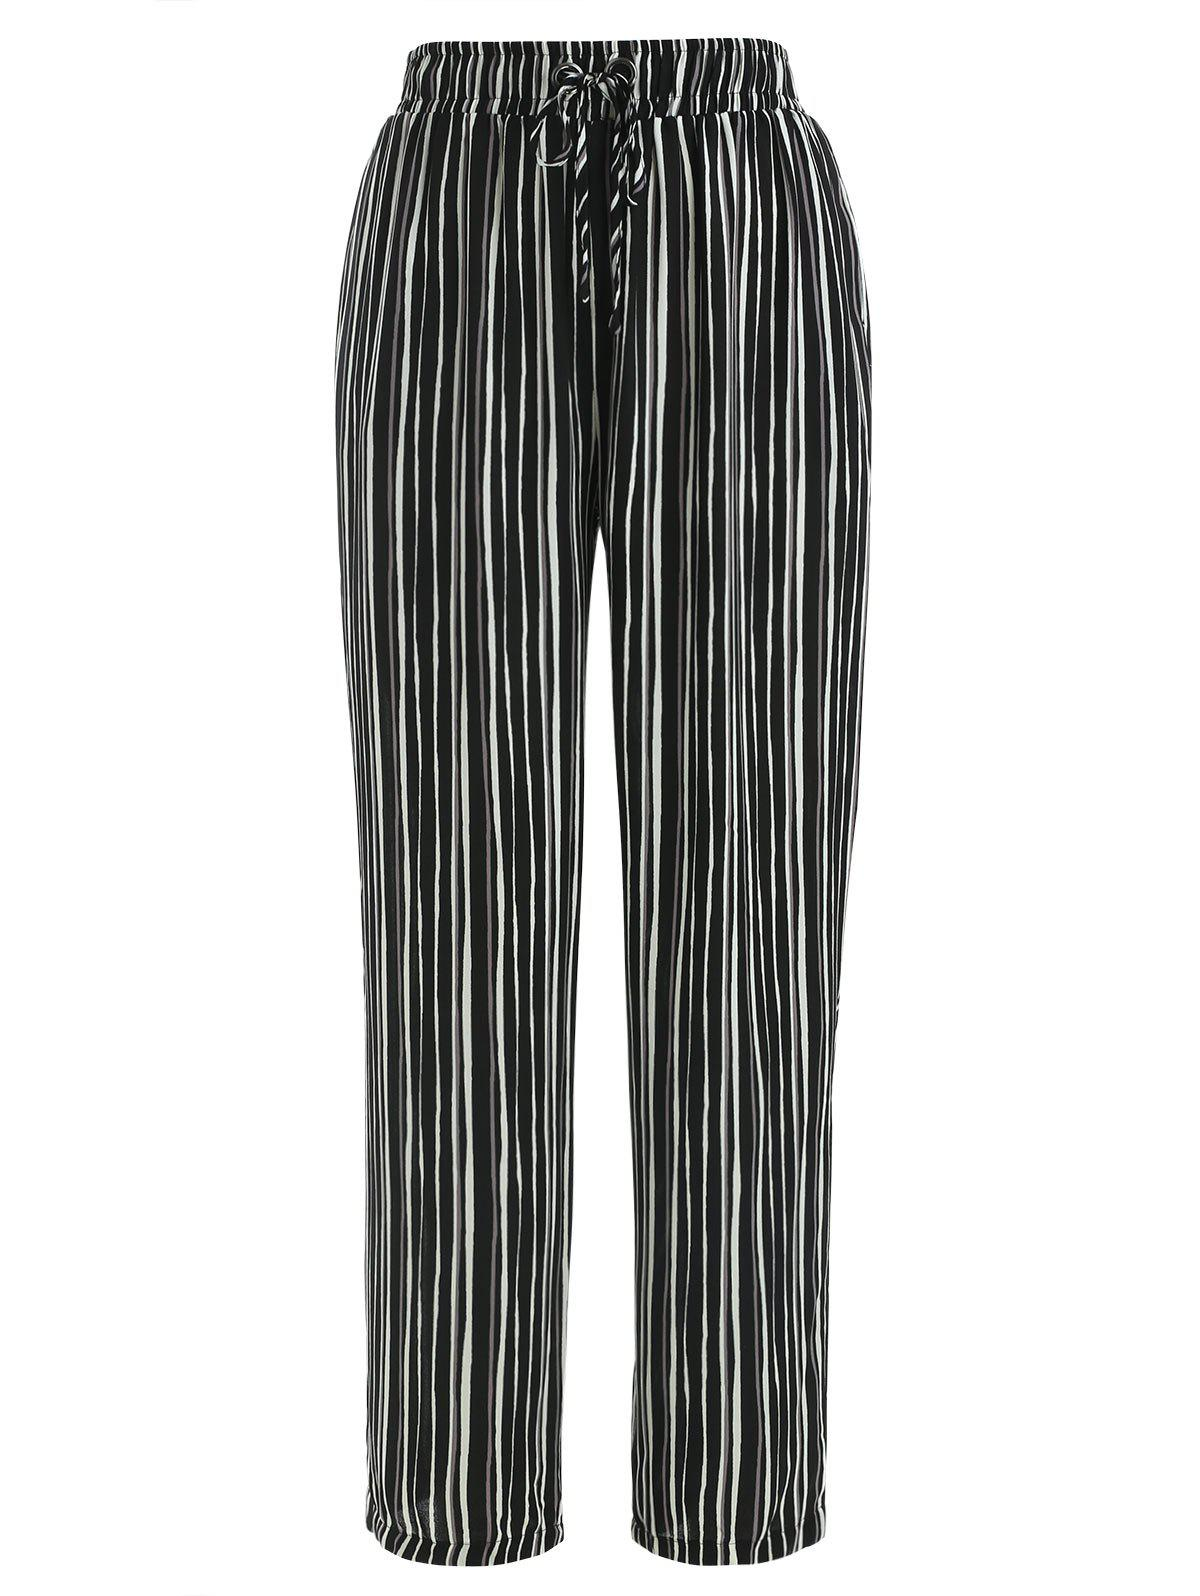 Hot Drawstring Striped Print Pants